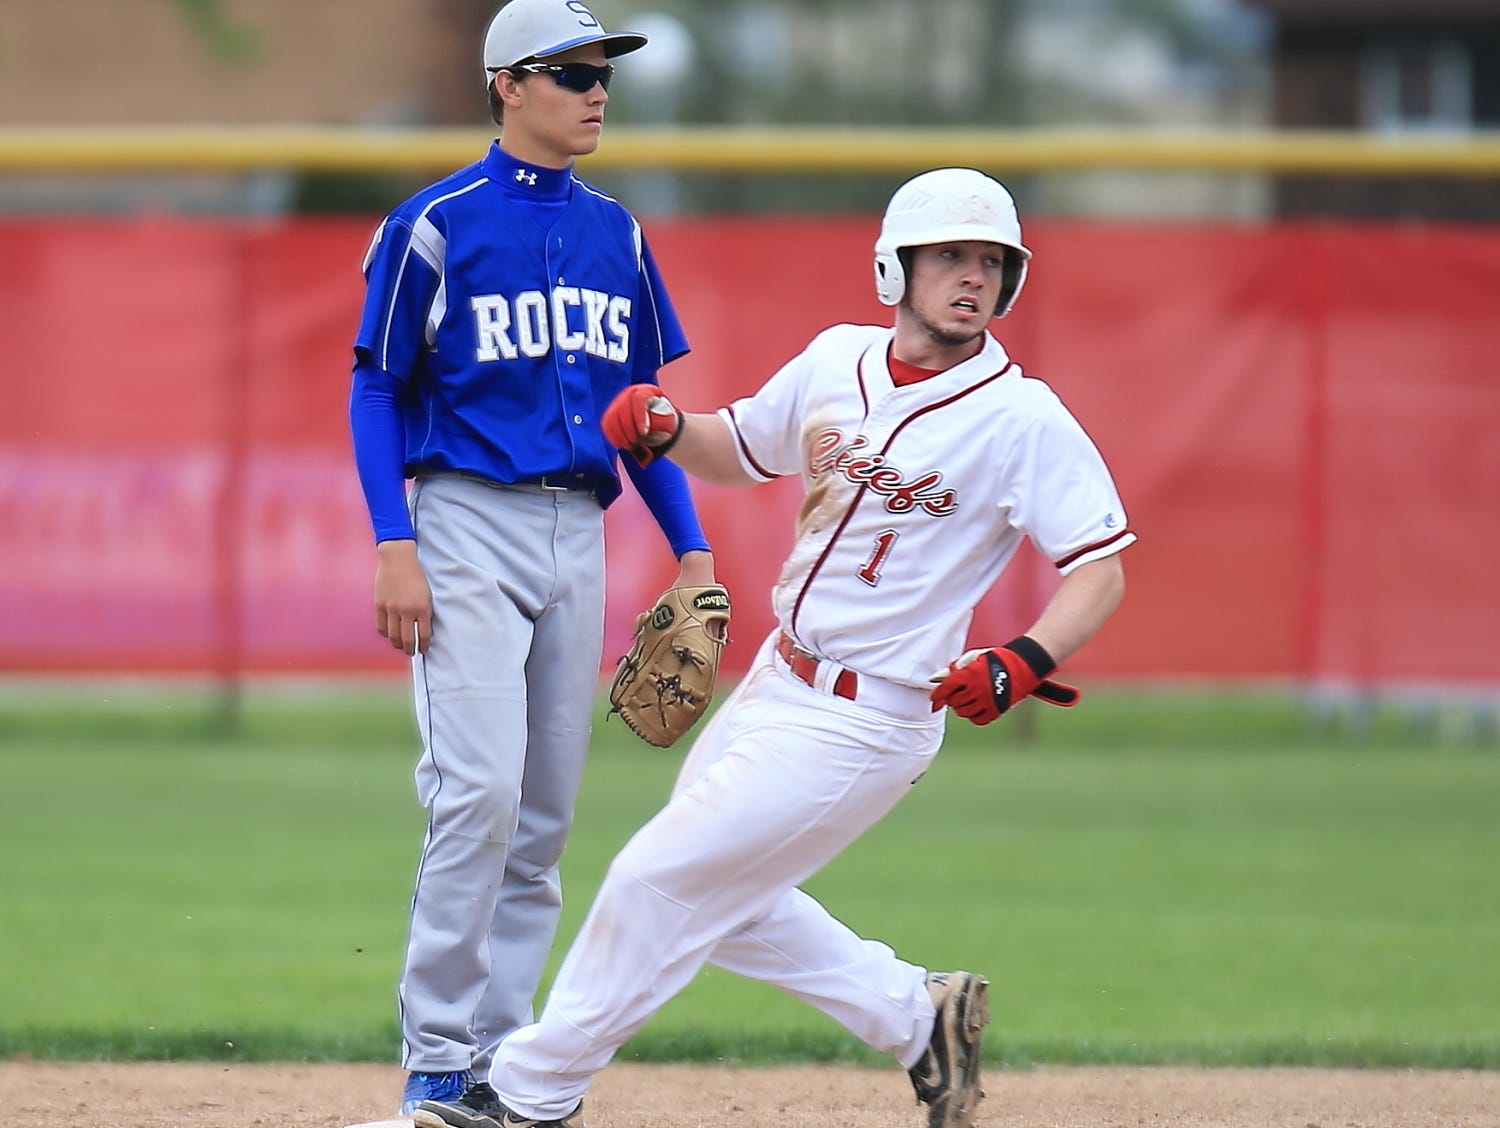 Rounding into second base for Canton during Thursday's game is senior Nick Durocher (No. 1). Also shown is Salem's Erich Payne.